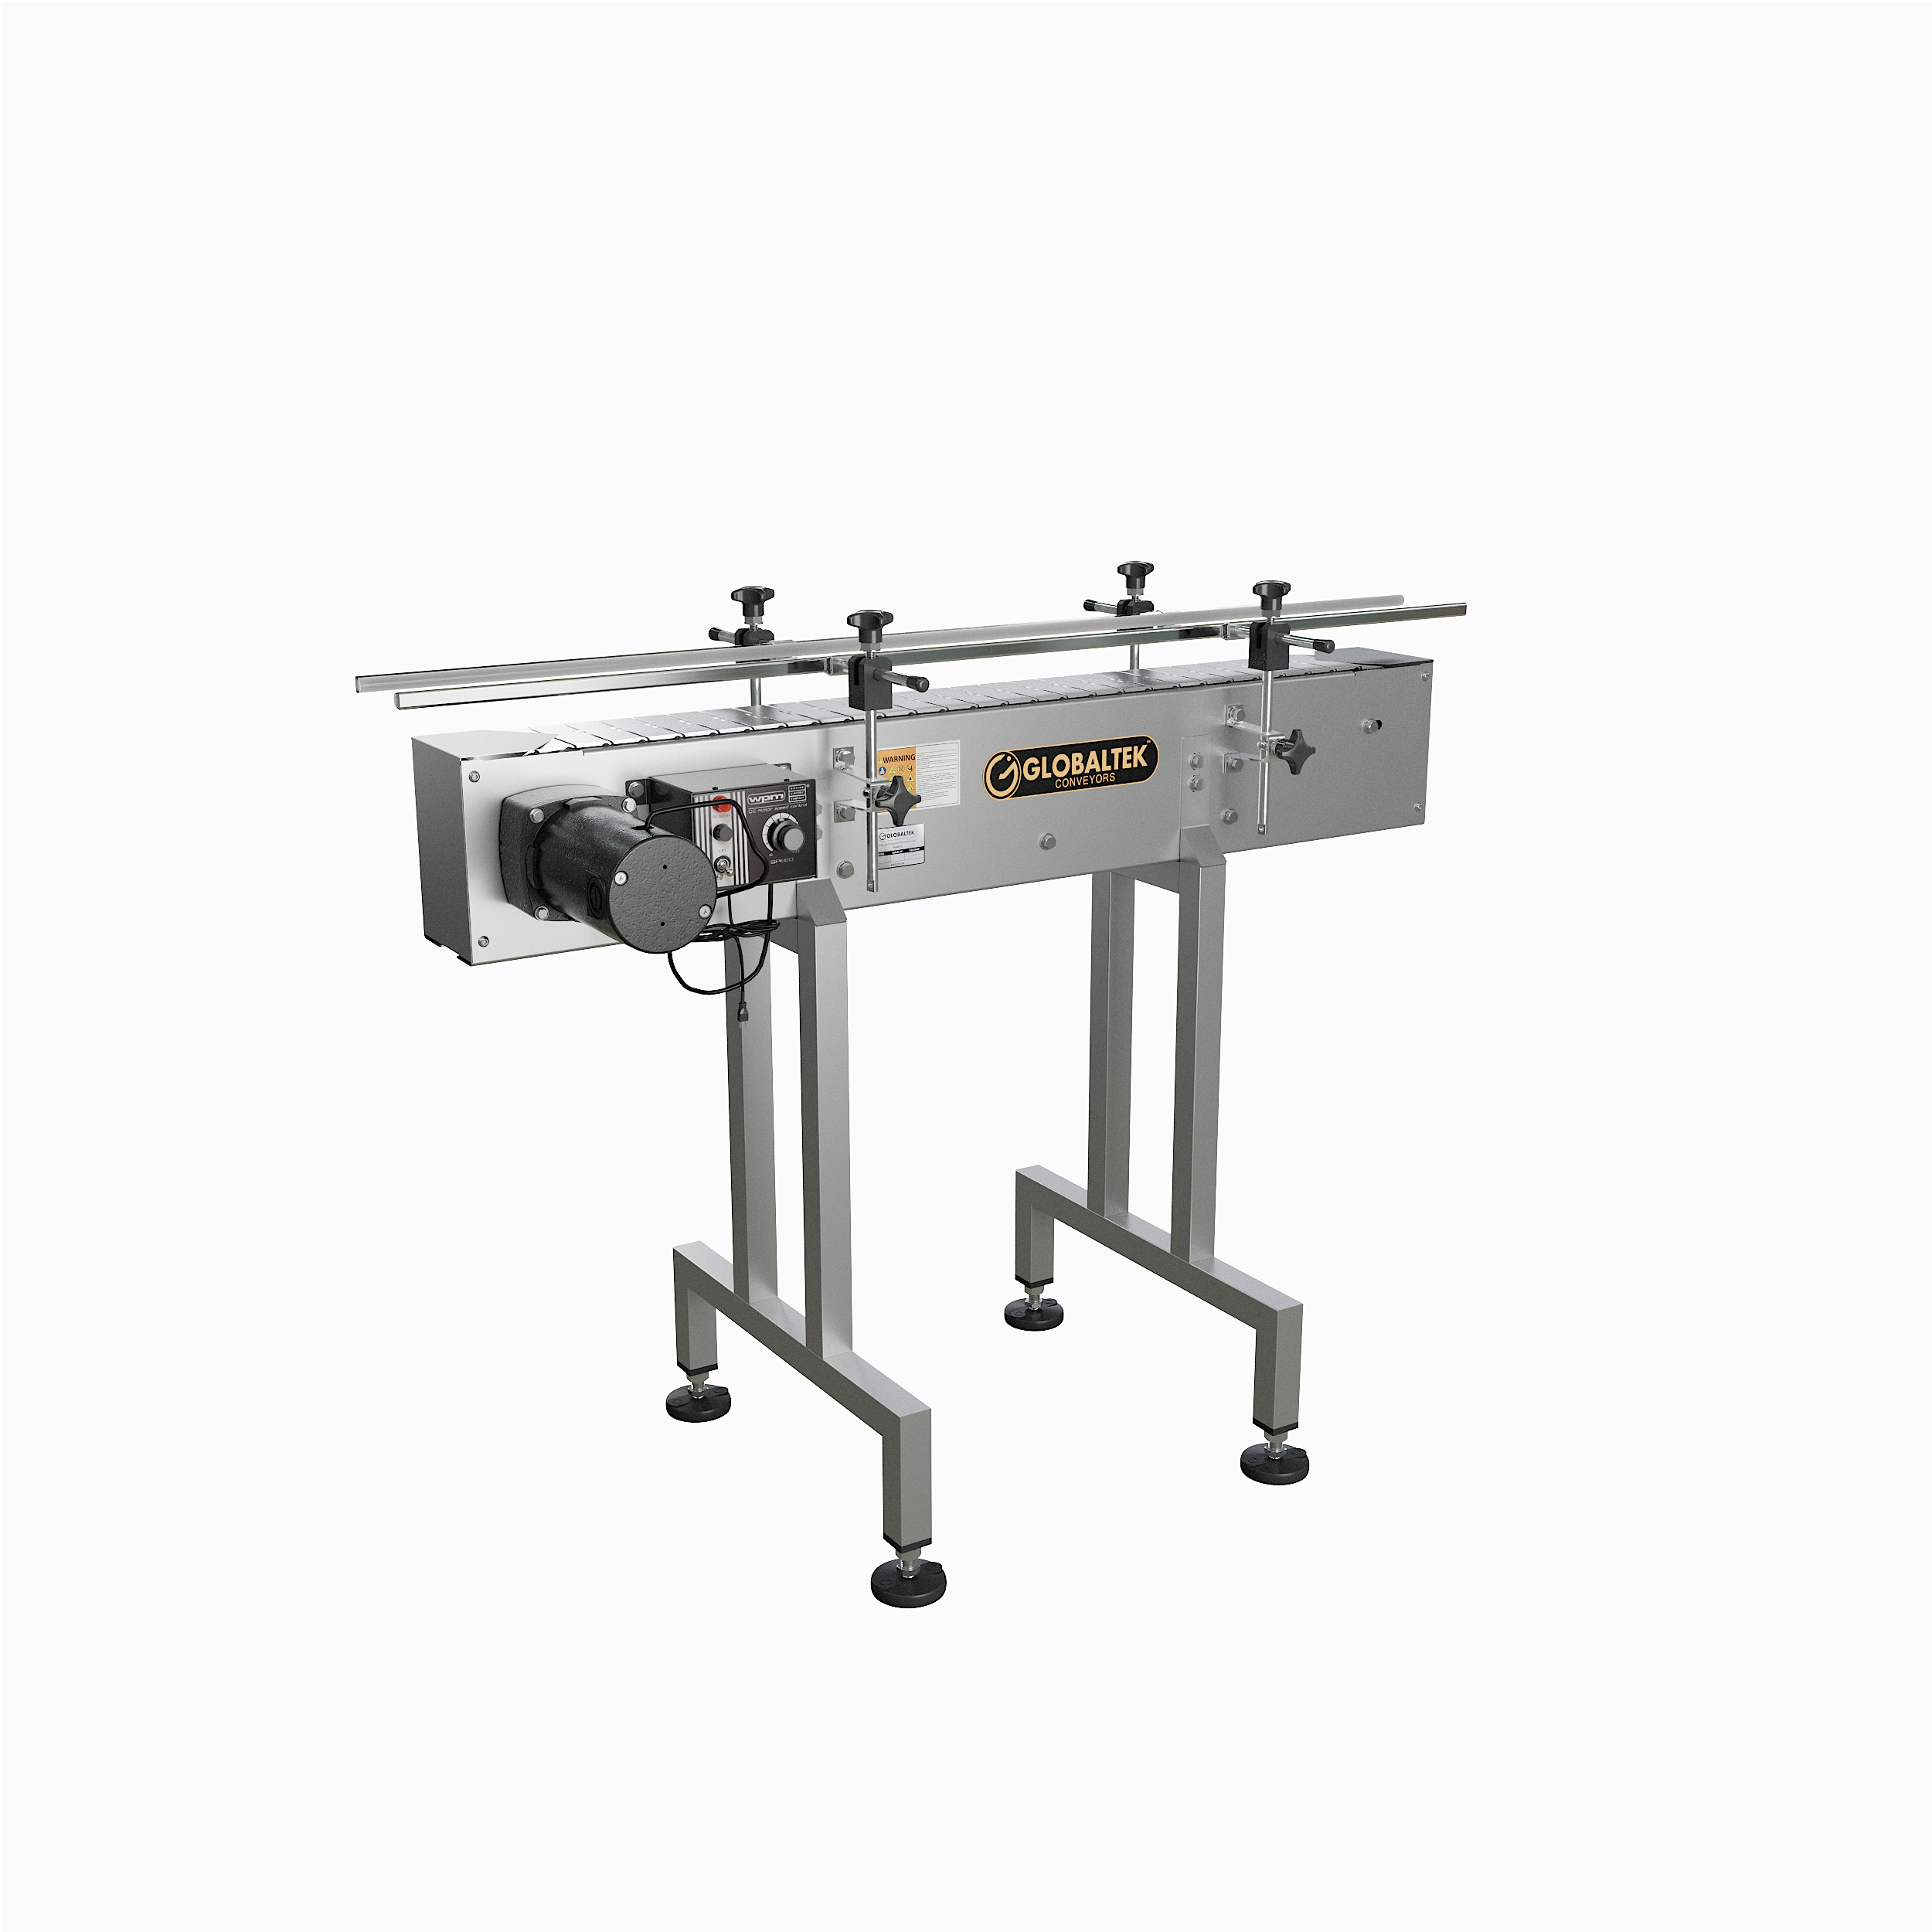 Globaltek Stainless Steel Inline Conveyor With Stainless